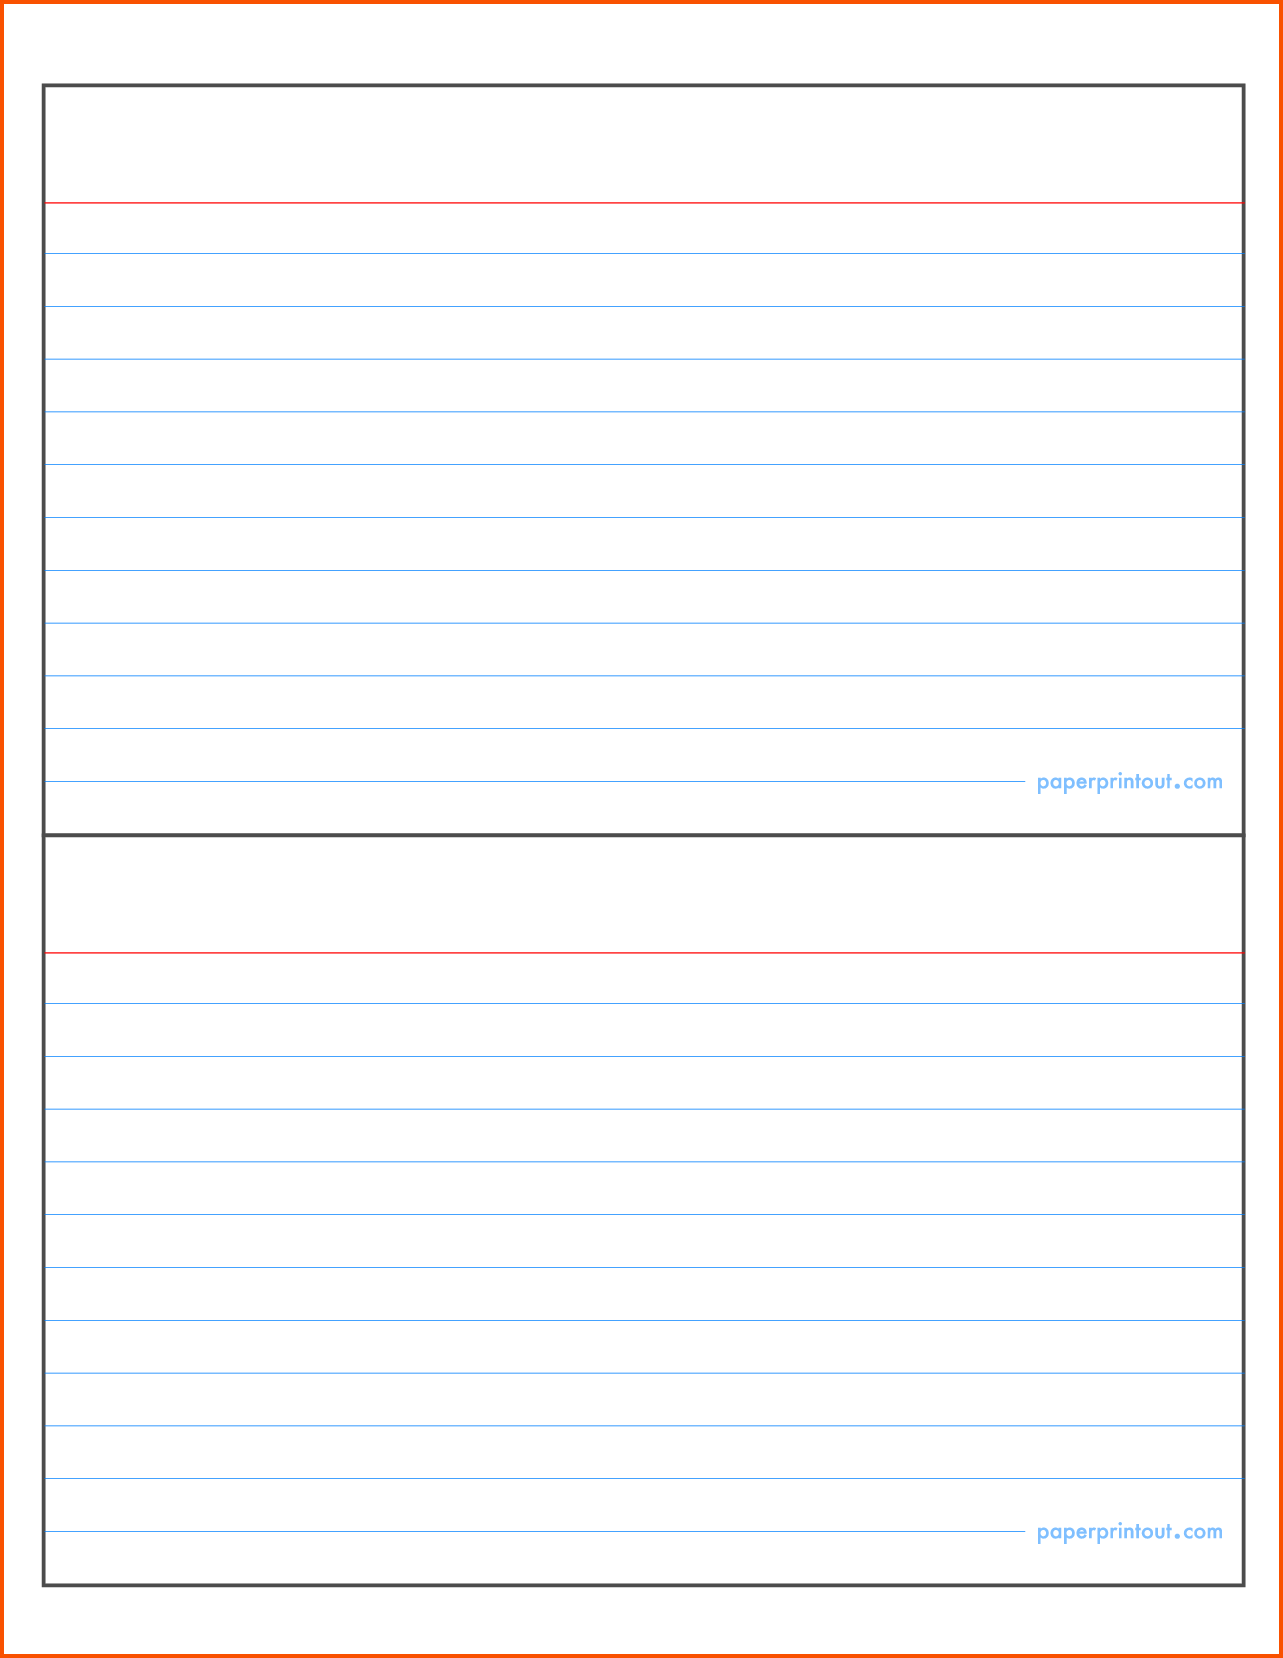 4×6 Index Card Template Word 2013